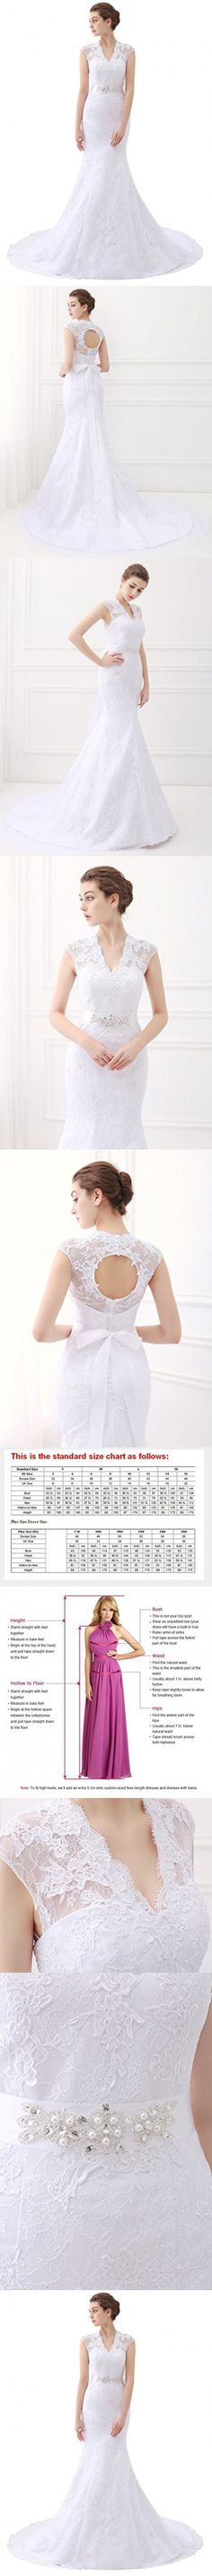 Ubridal Real Pictures Embroidery Lace Mermaid Court Wedding Dresses Bridal Gowns white 26W